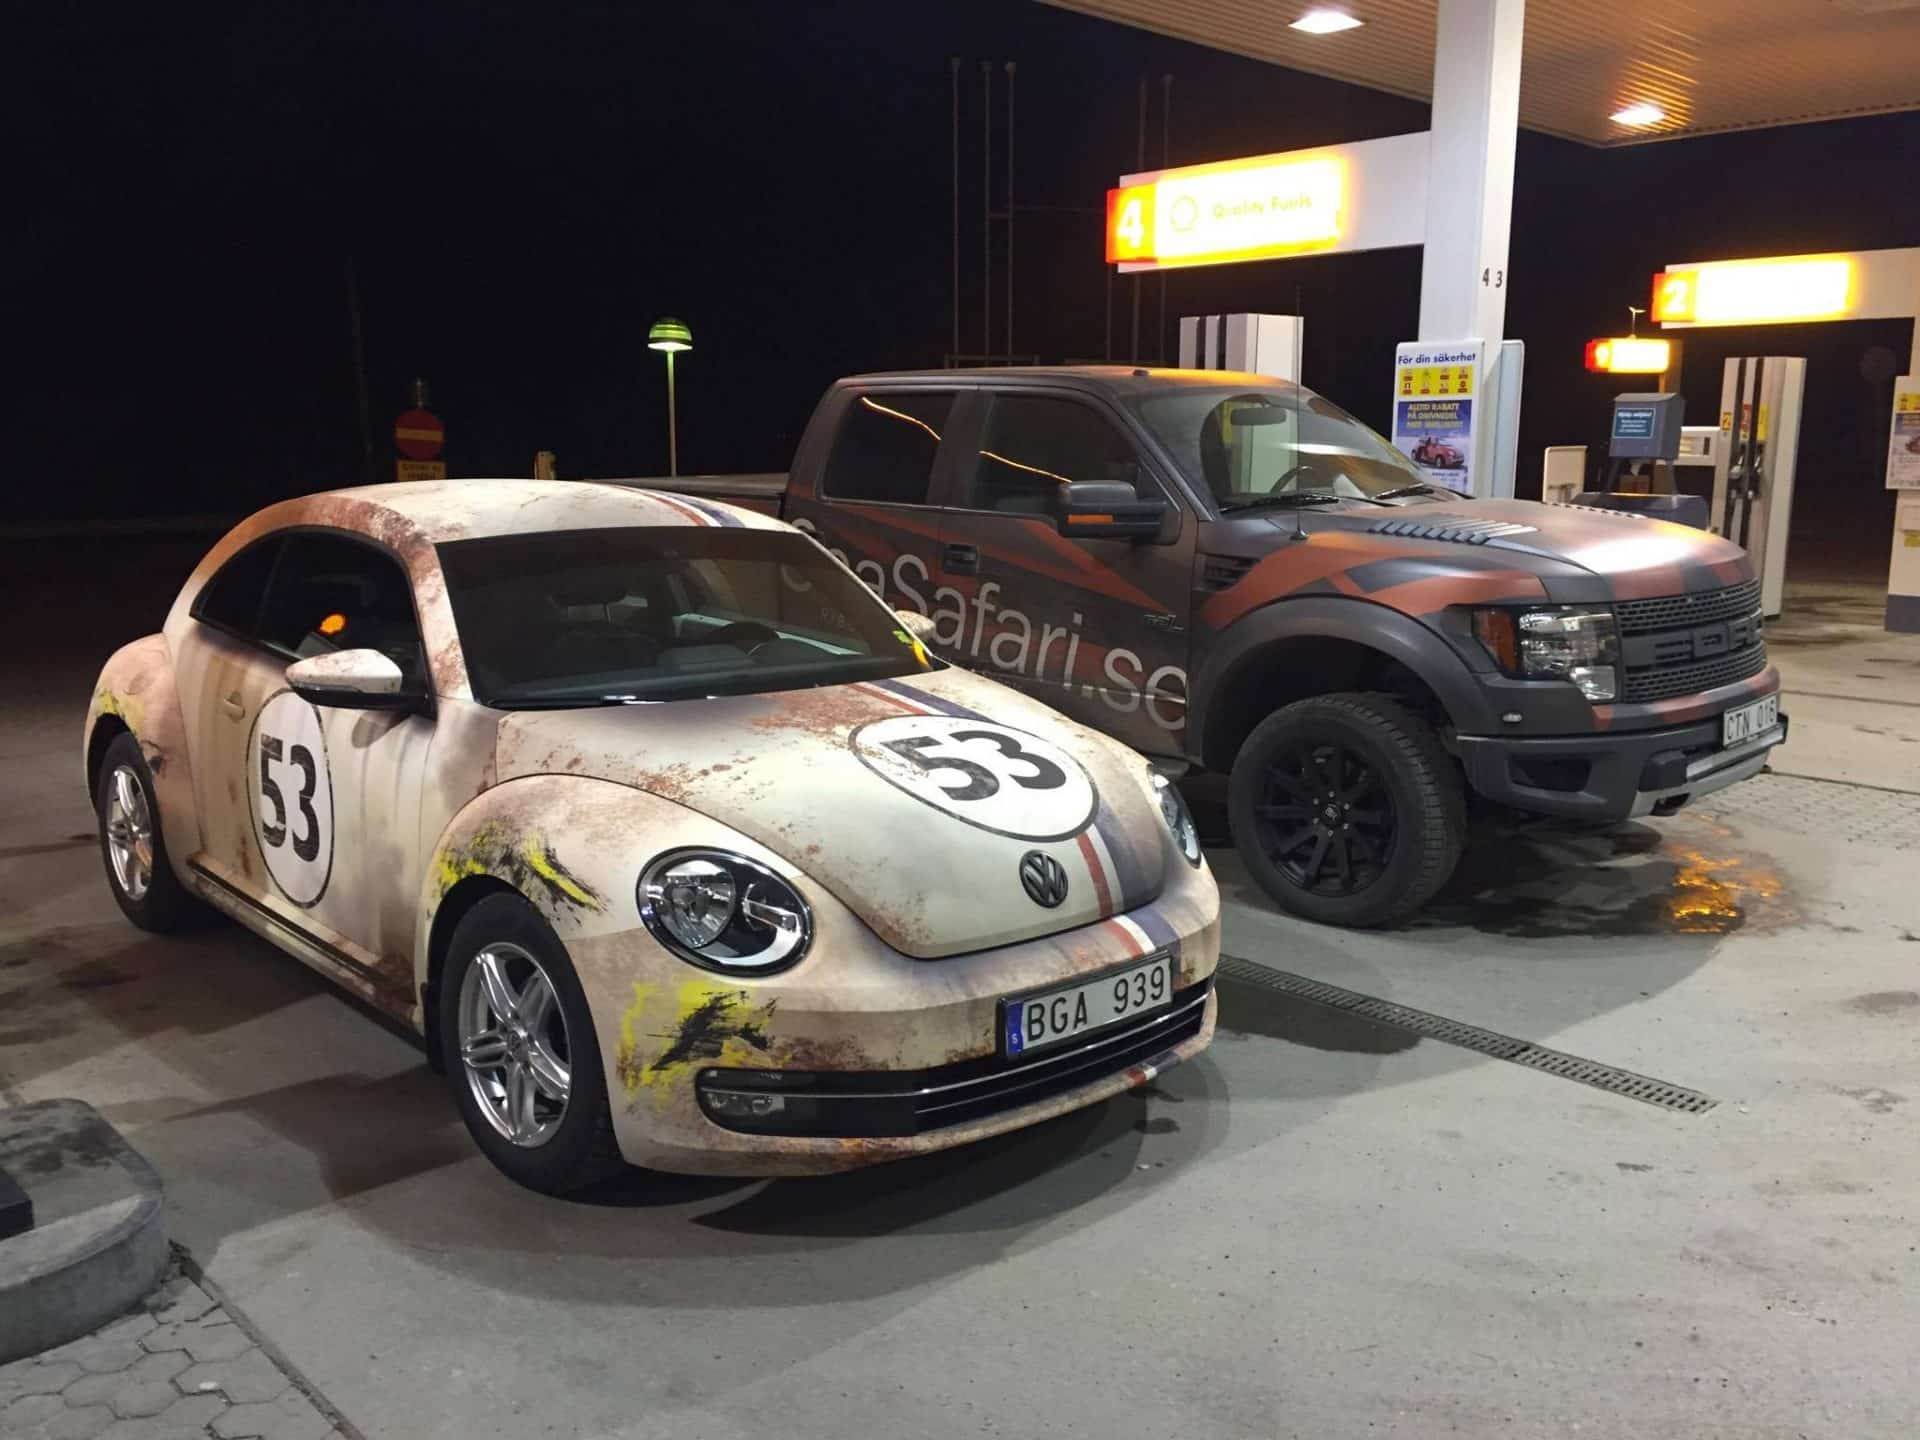 Apocalyptic Herbie Beetle Rust Wrap | Skepple Inc